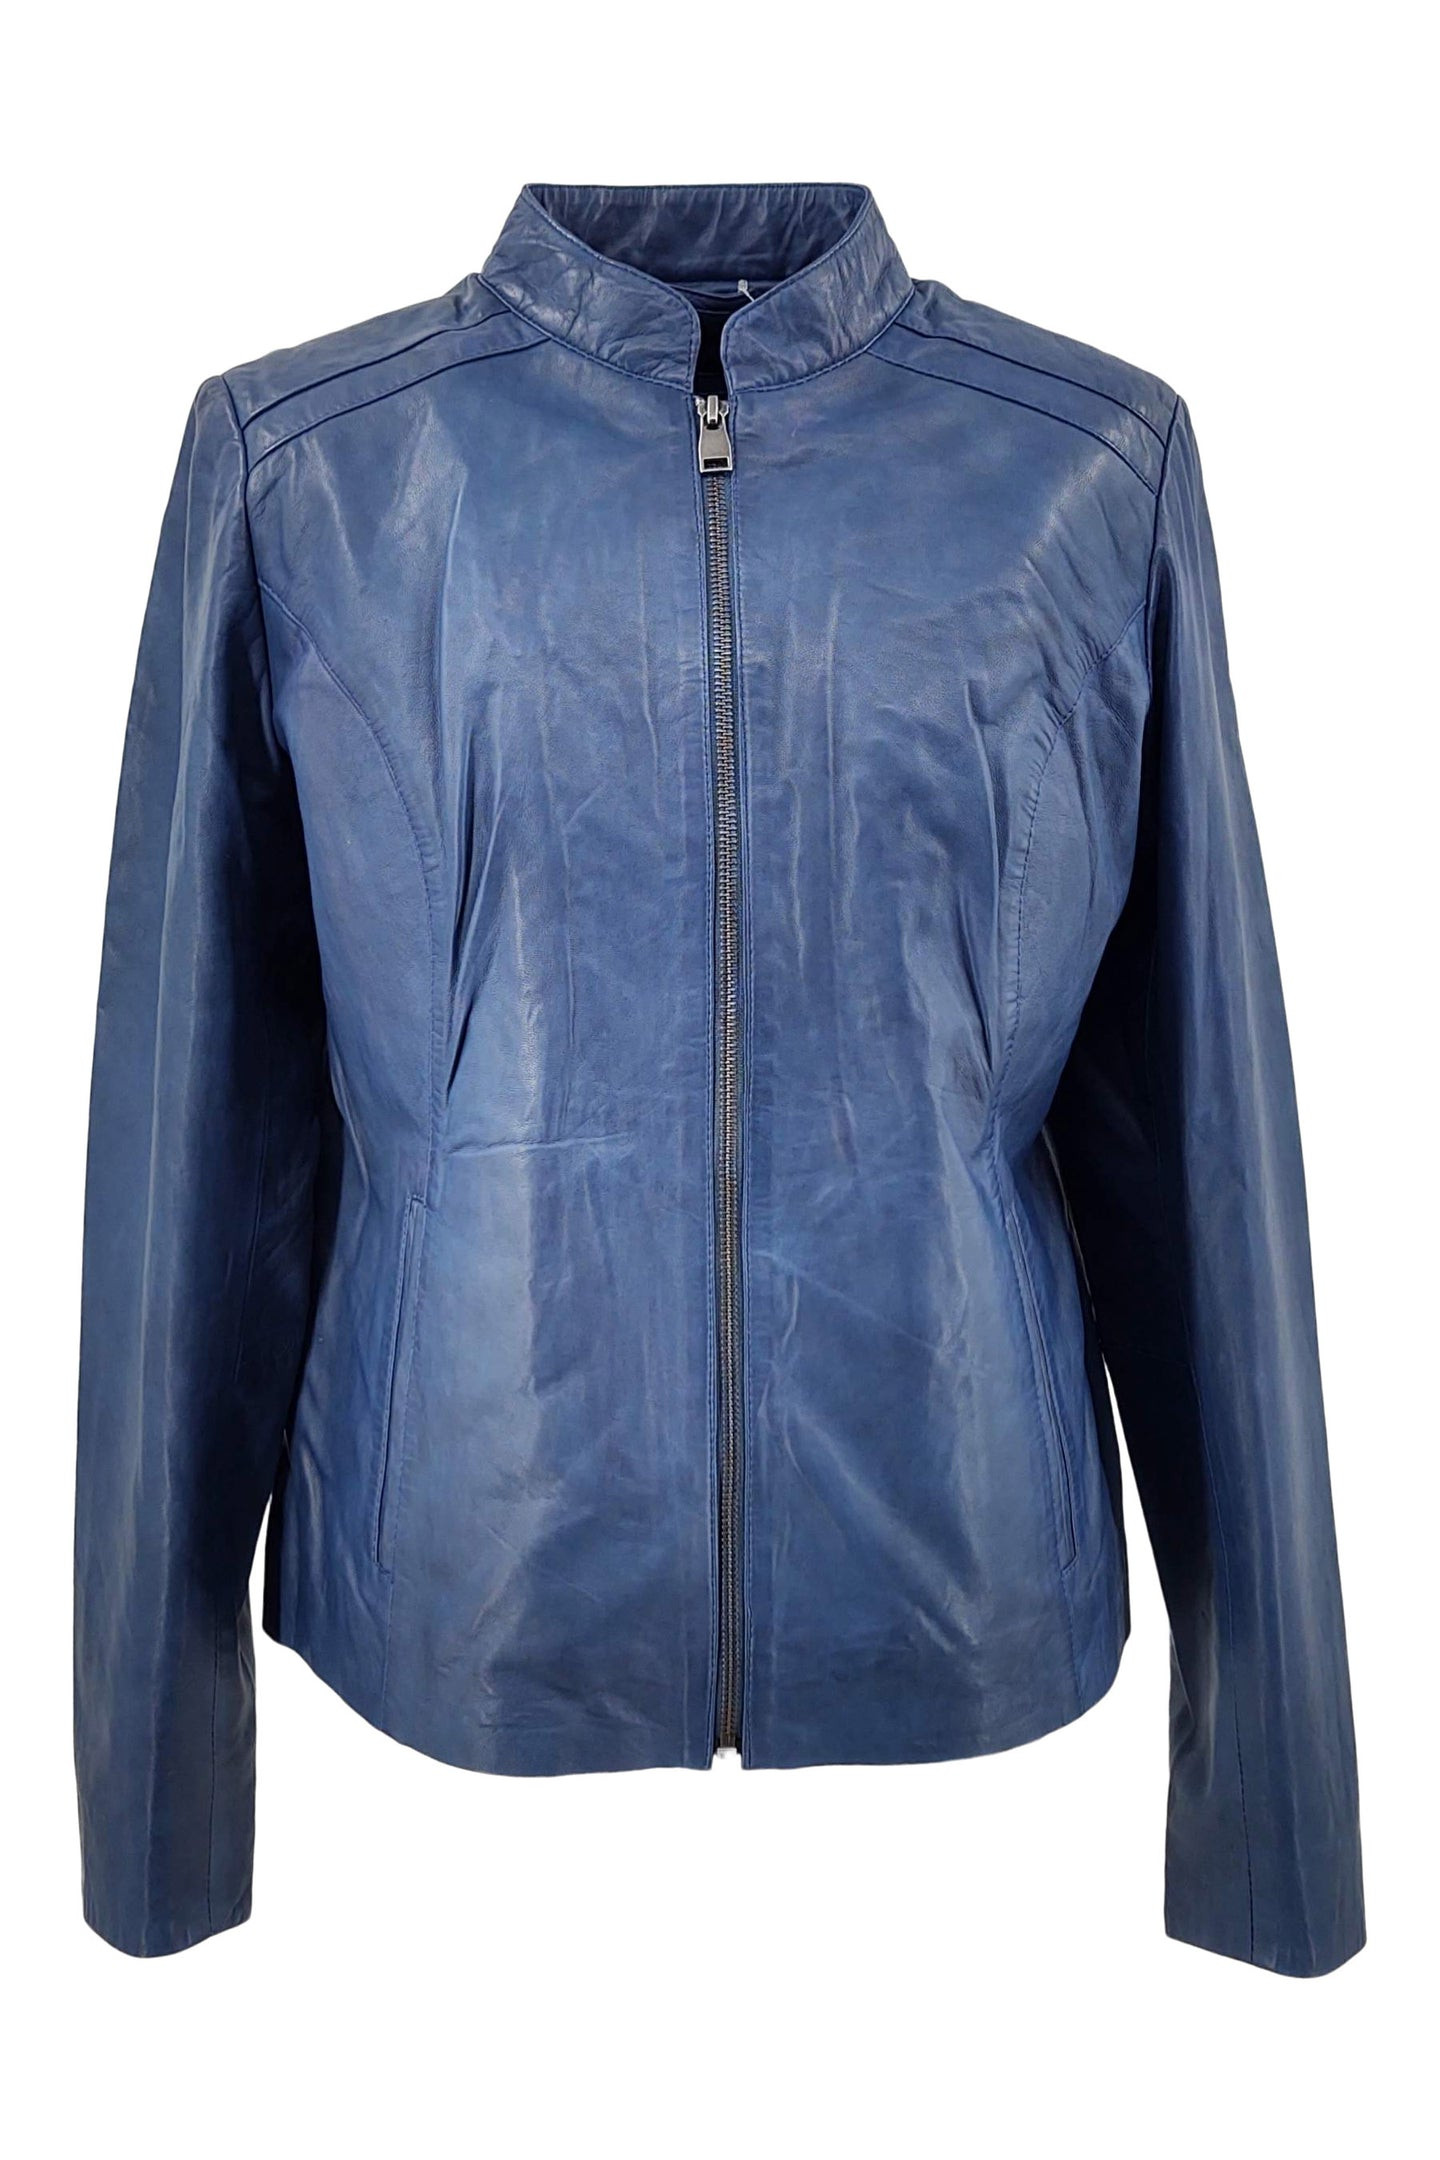 Silja - Lamb Malli Leather - Women - Sapphire Blue | STAMPE PELS